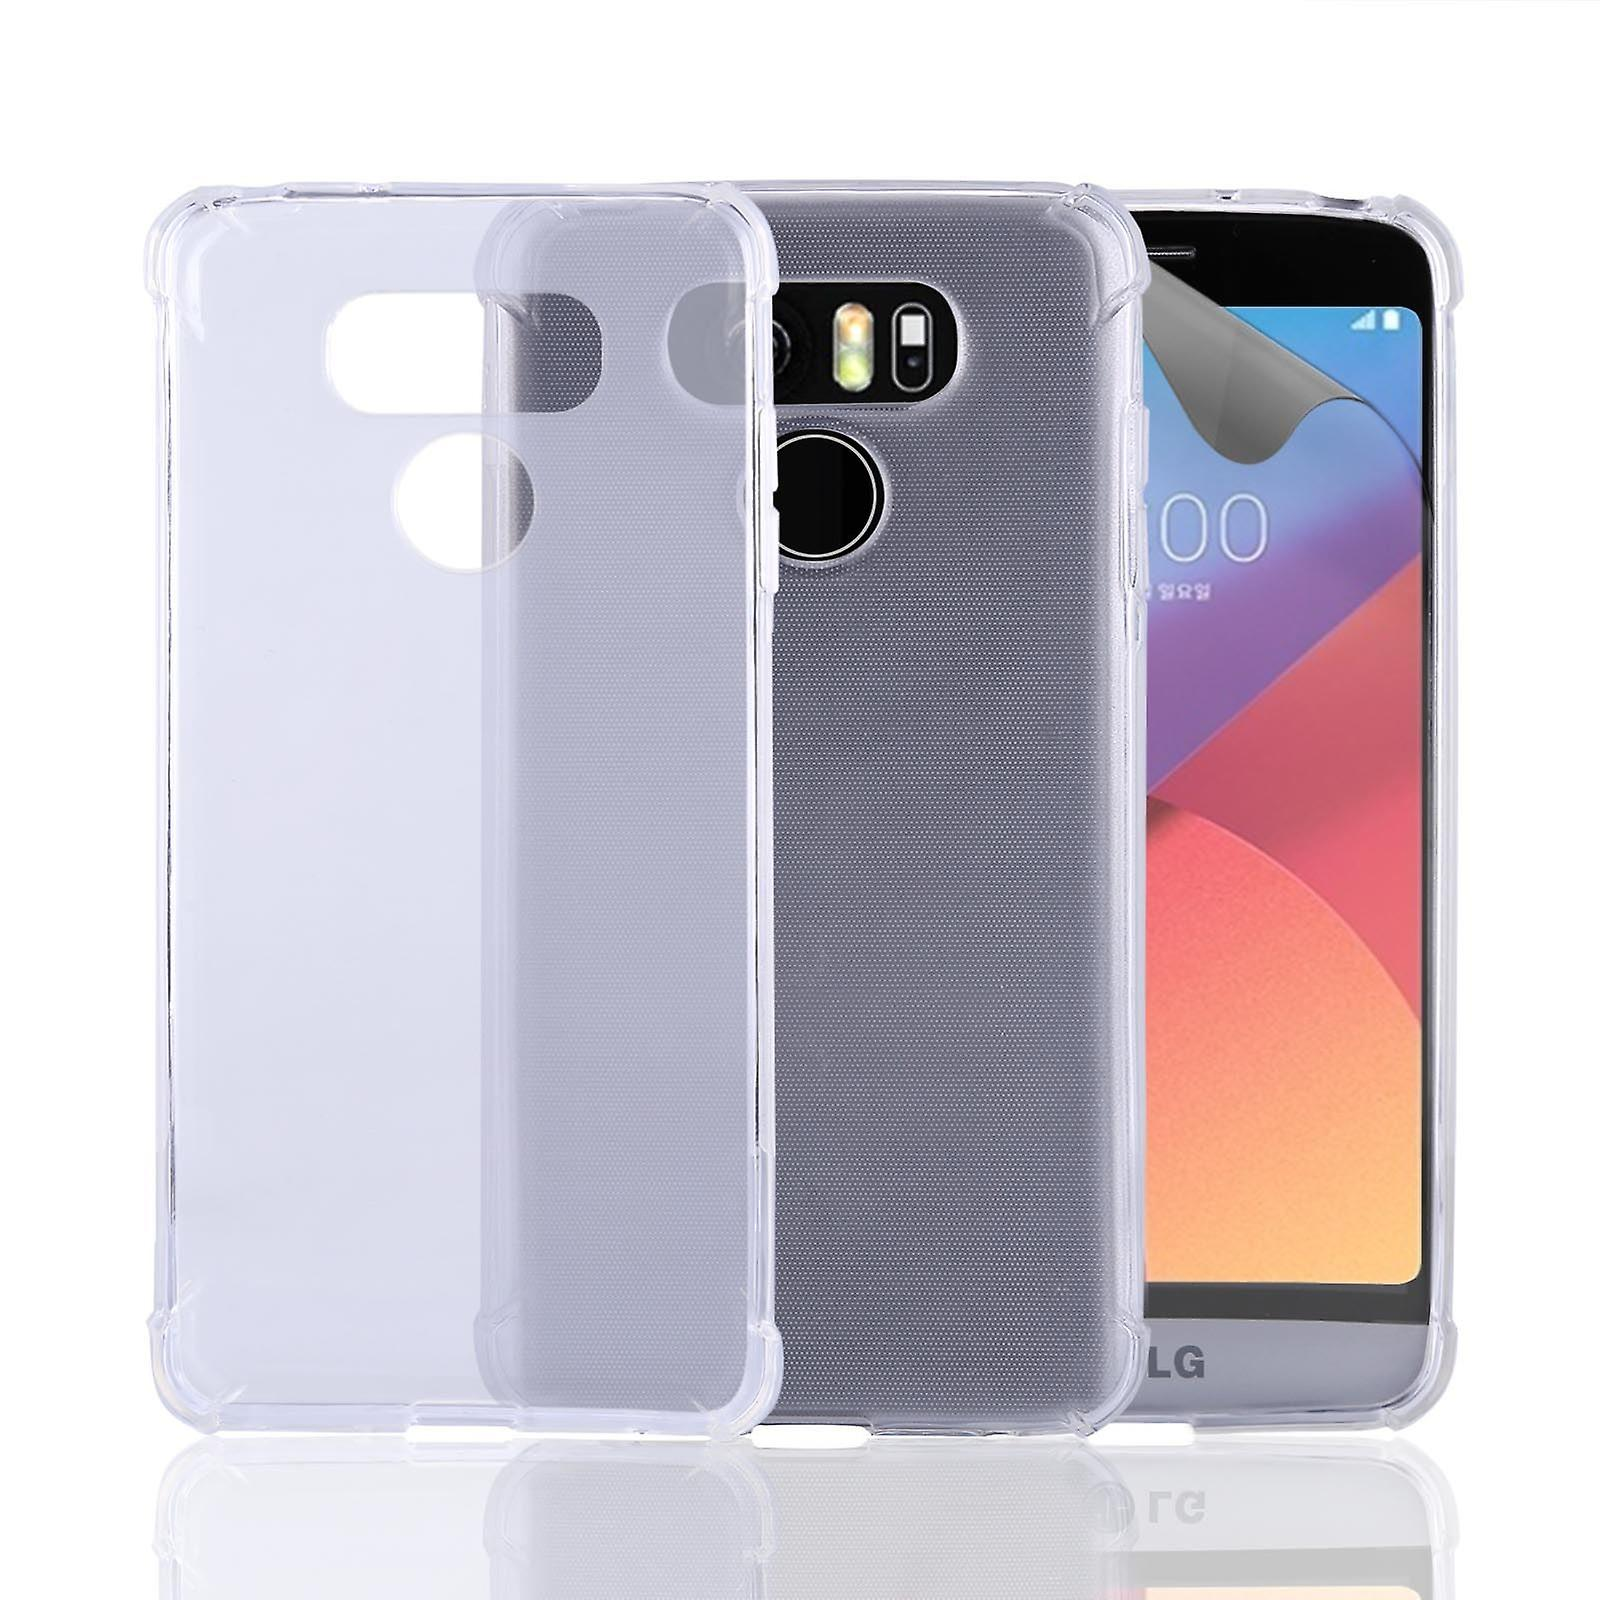 32nd Tough Gel case for LG G6 - Clear